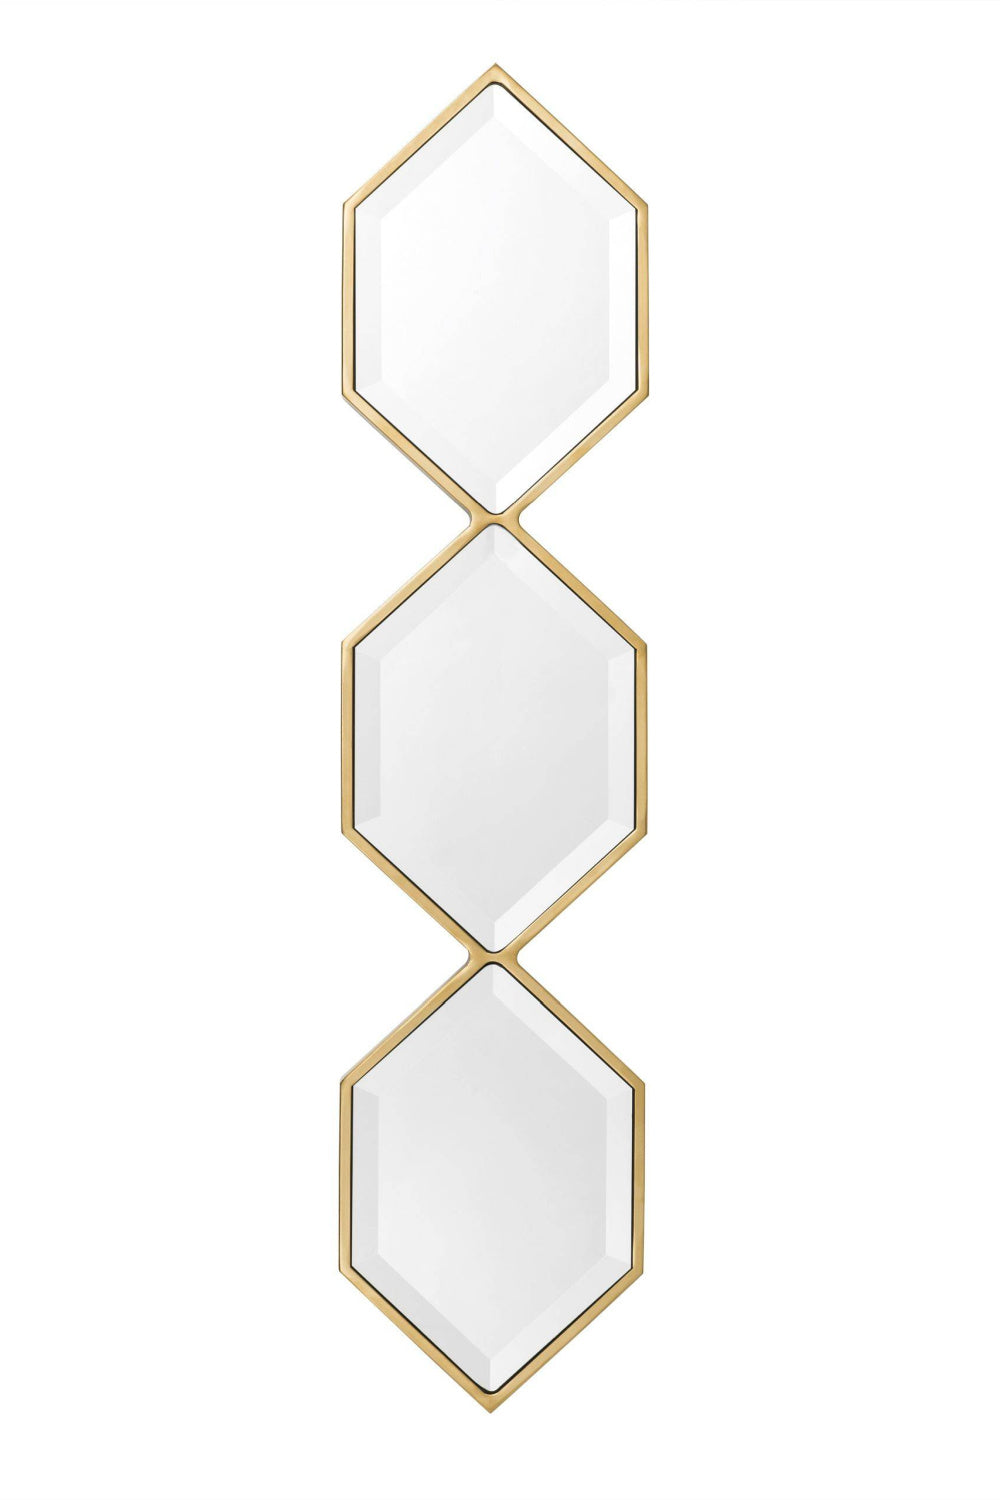 Gold Hexagonal Trio Mirror | Eichholtz Saronno